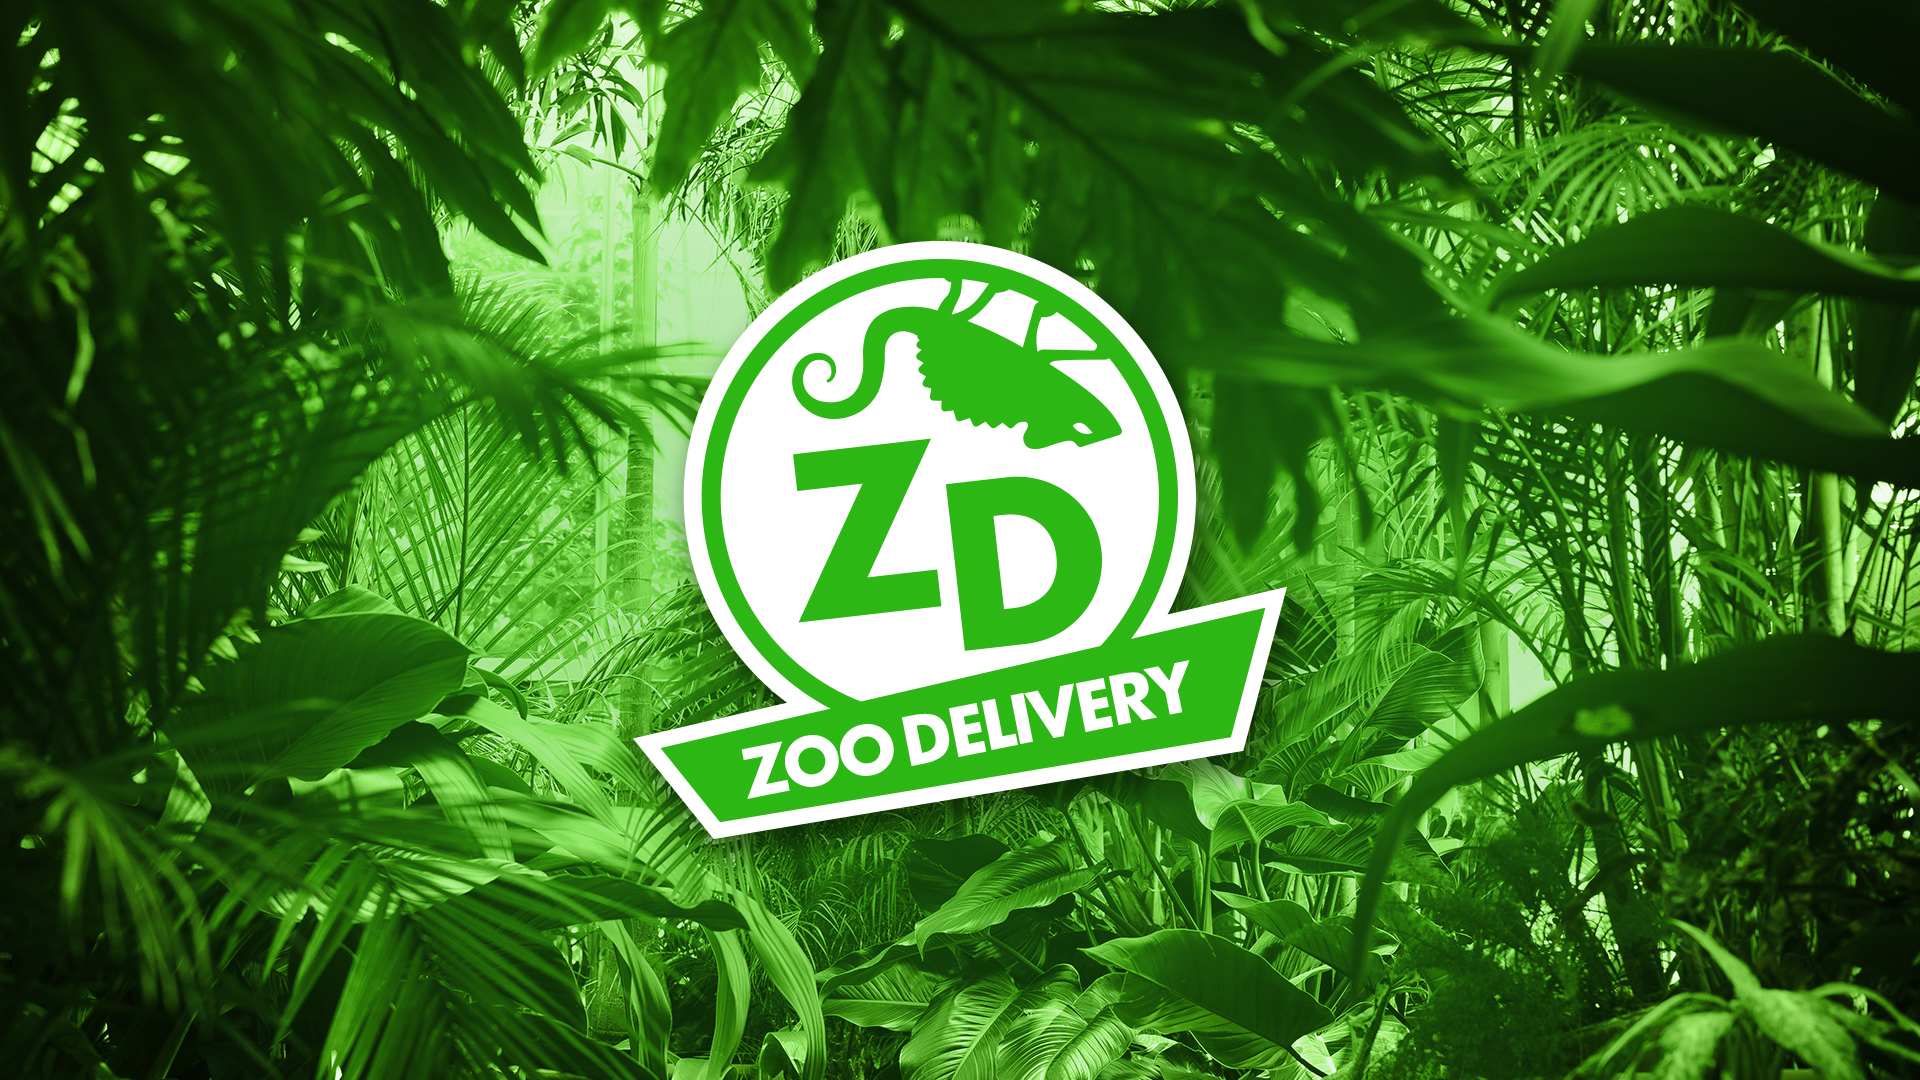 CAR - Zoo Delivery